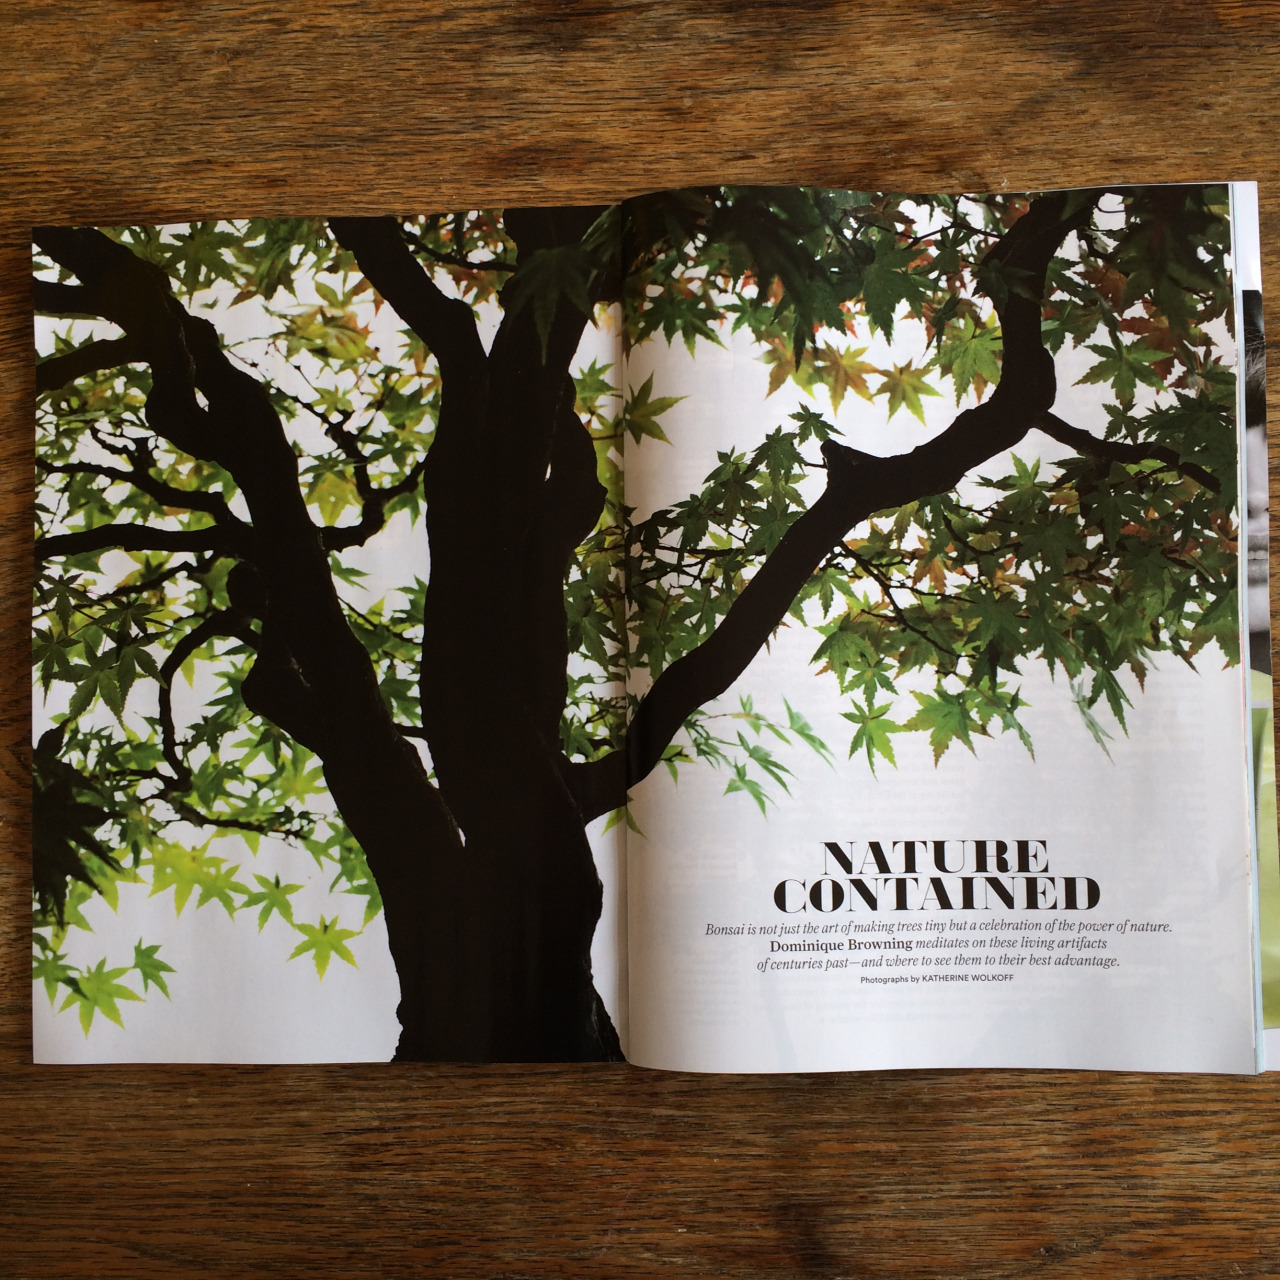 Bonsai in this month's Conde Nast Traveller